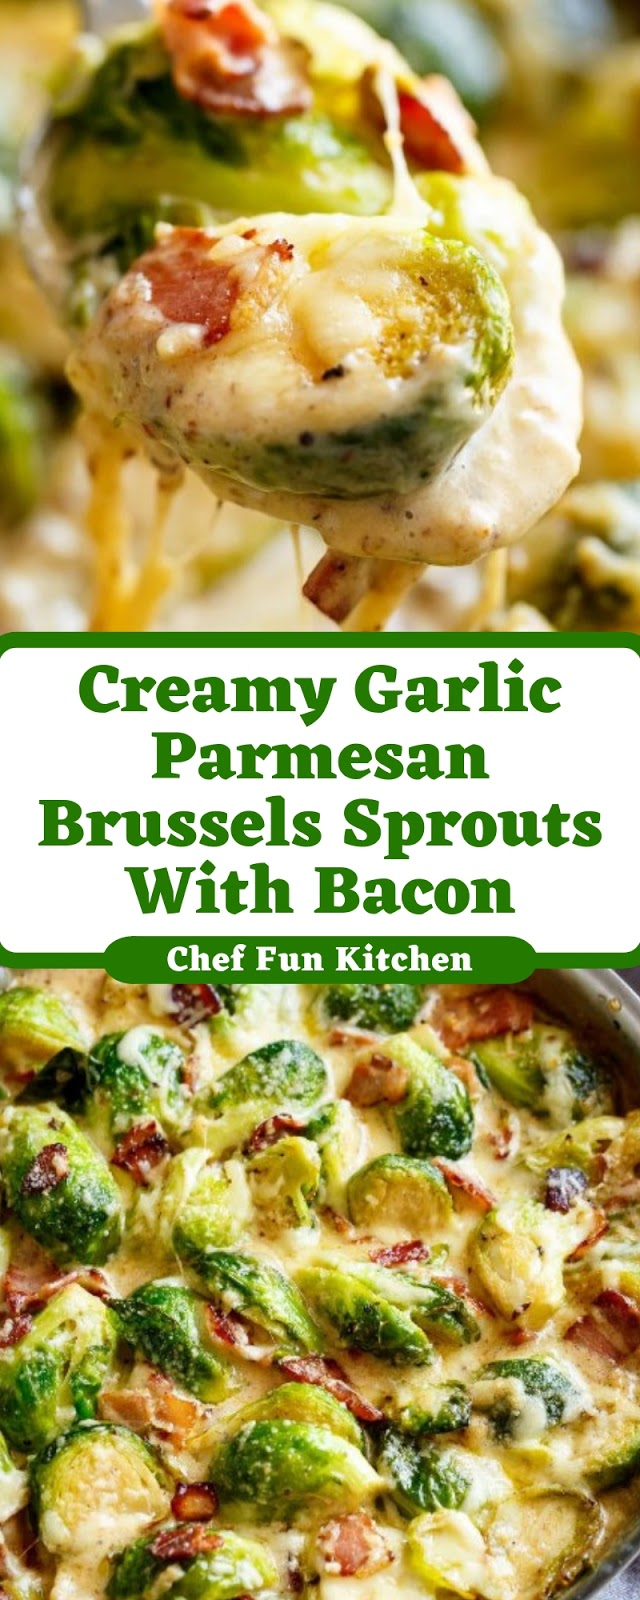 Creamy Garlic Parmesan Brussels Sprouts With Bacon